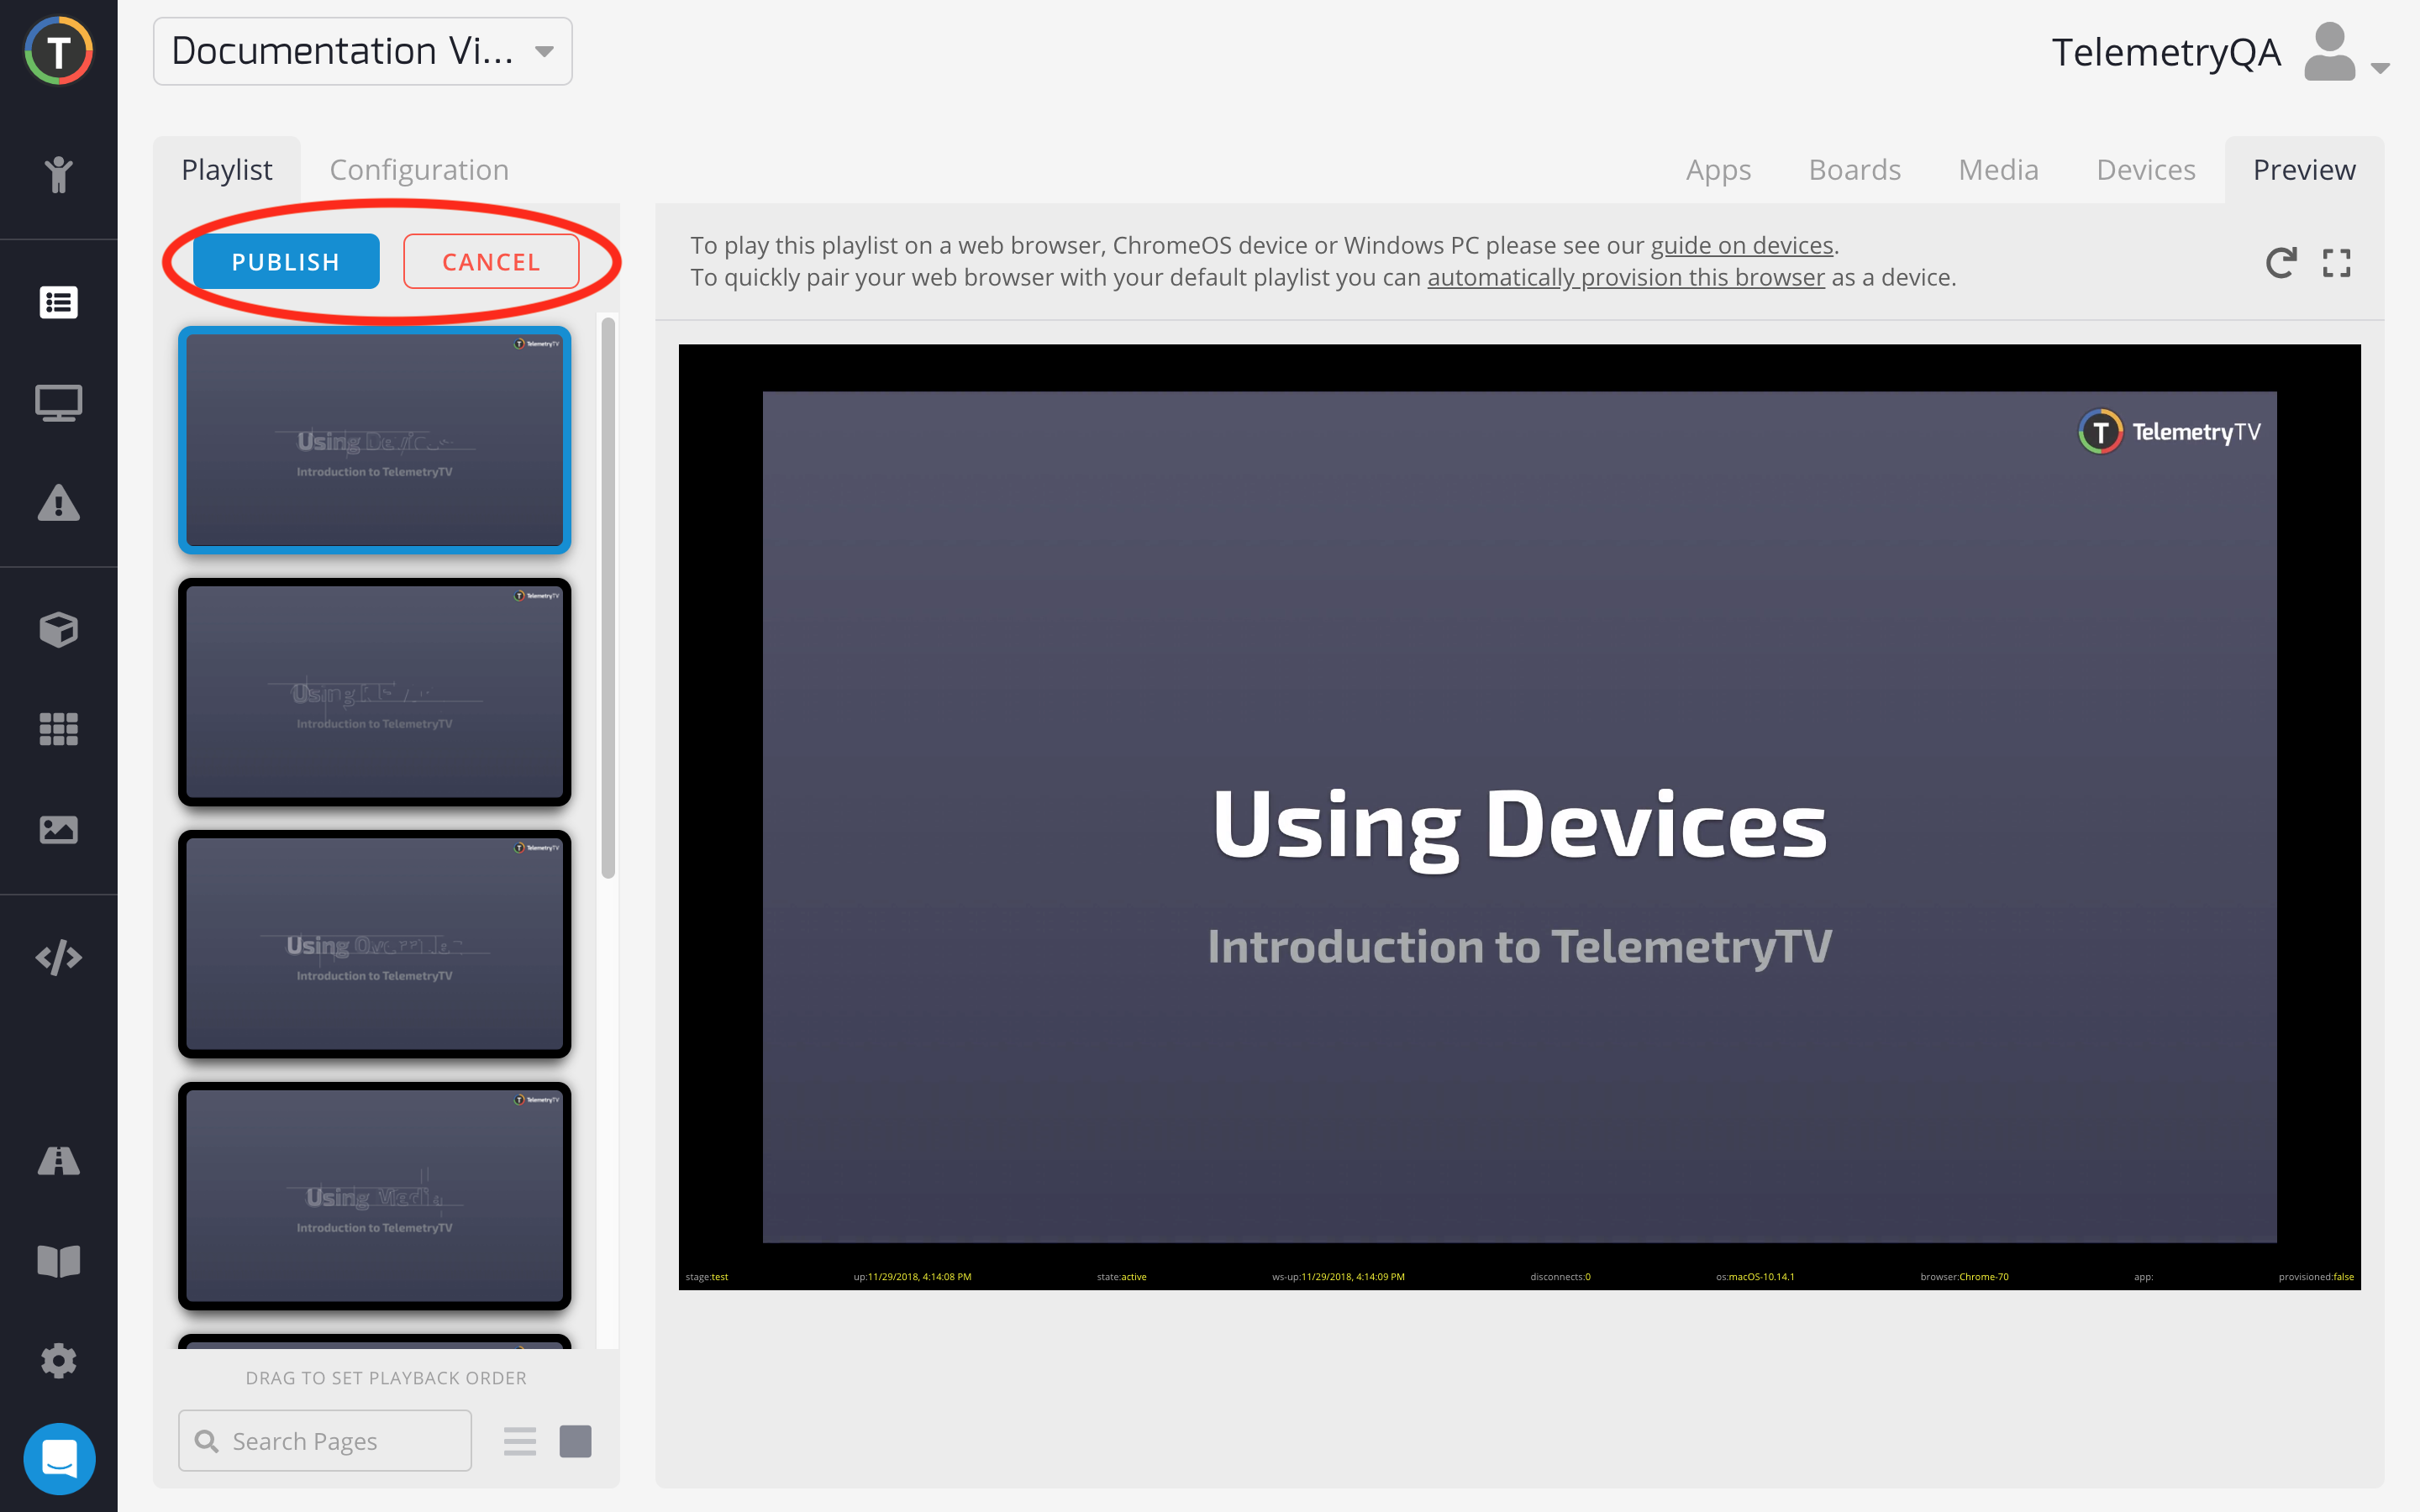 Product Update: New Features Coming to TelemetryTV